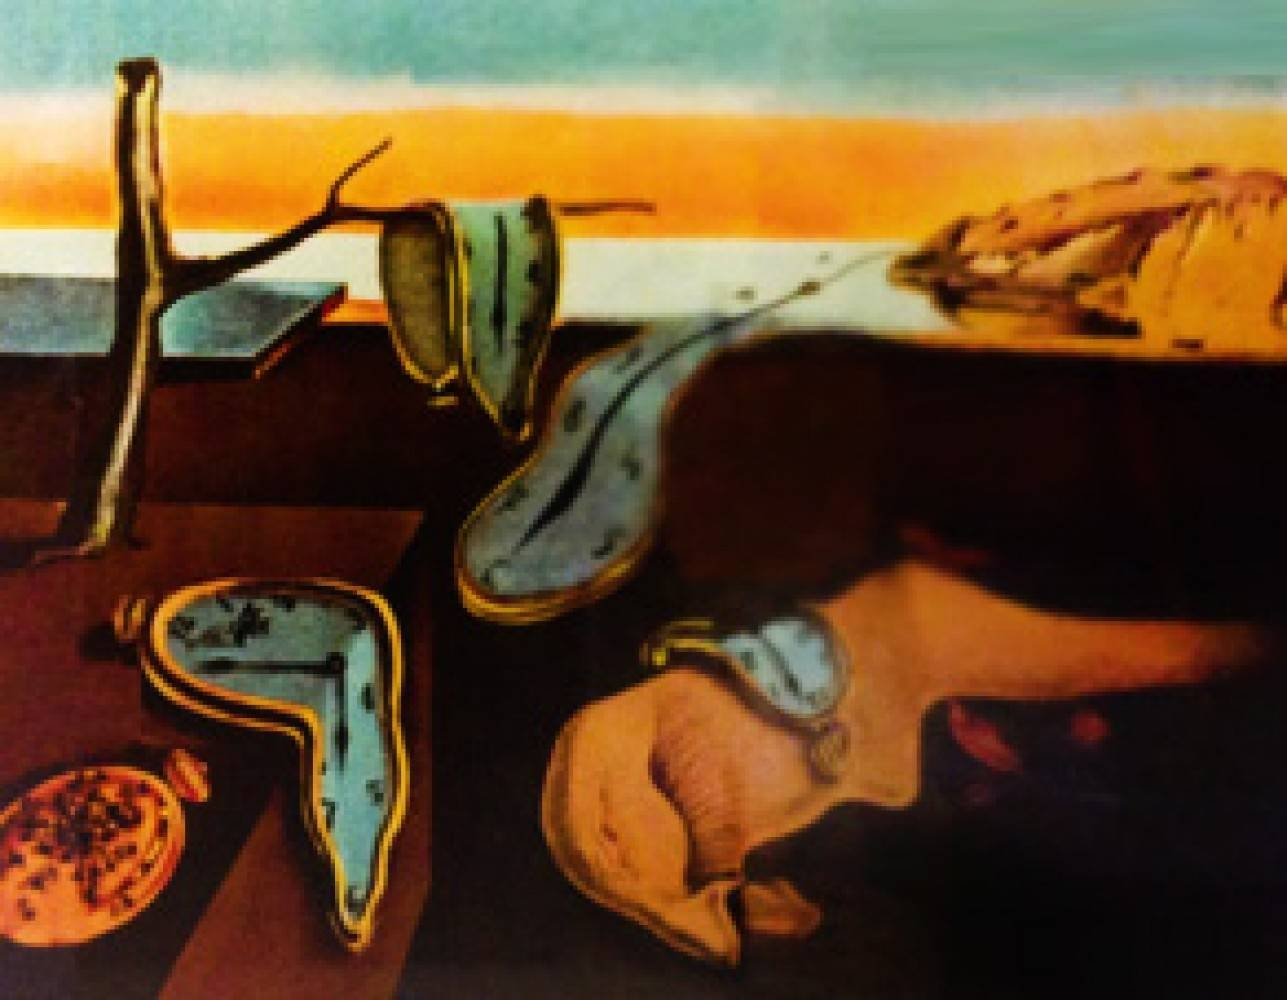 Salvador Dali Art For Sale Within Latest Salvador Dali Wall Art (View 16 of 20)